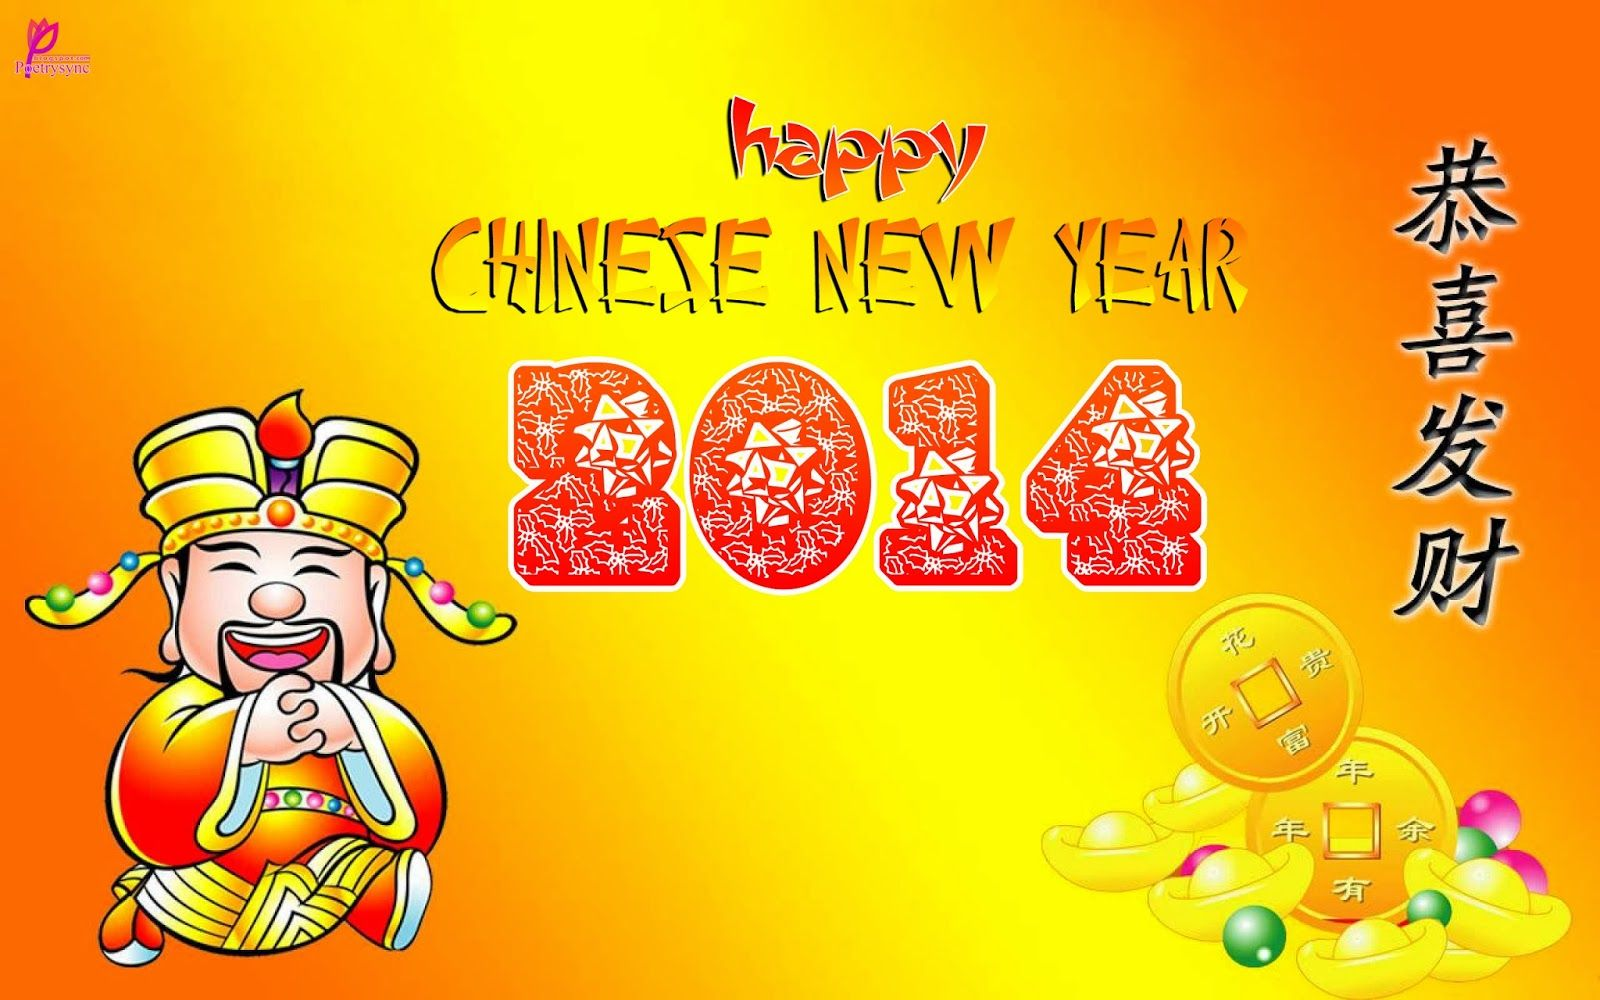 Poetry Happy Chinese New Year Wishes Cards With Lunar New Year